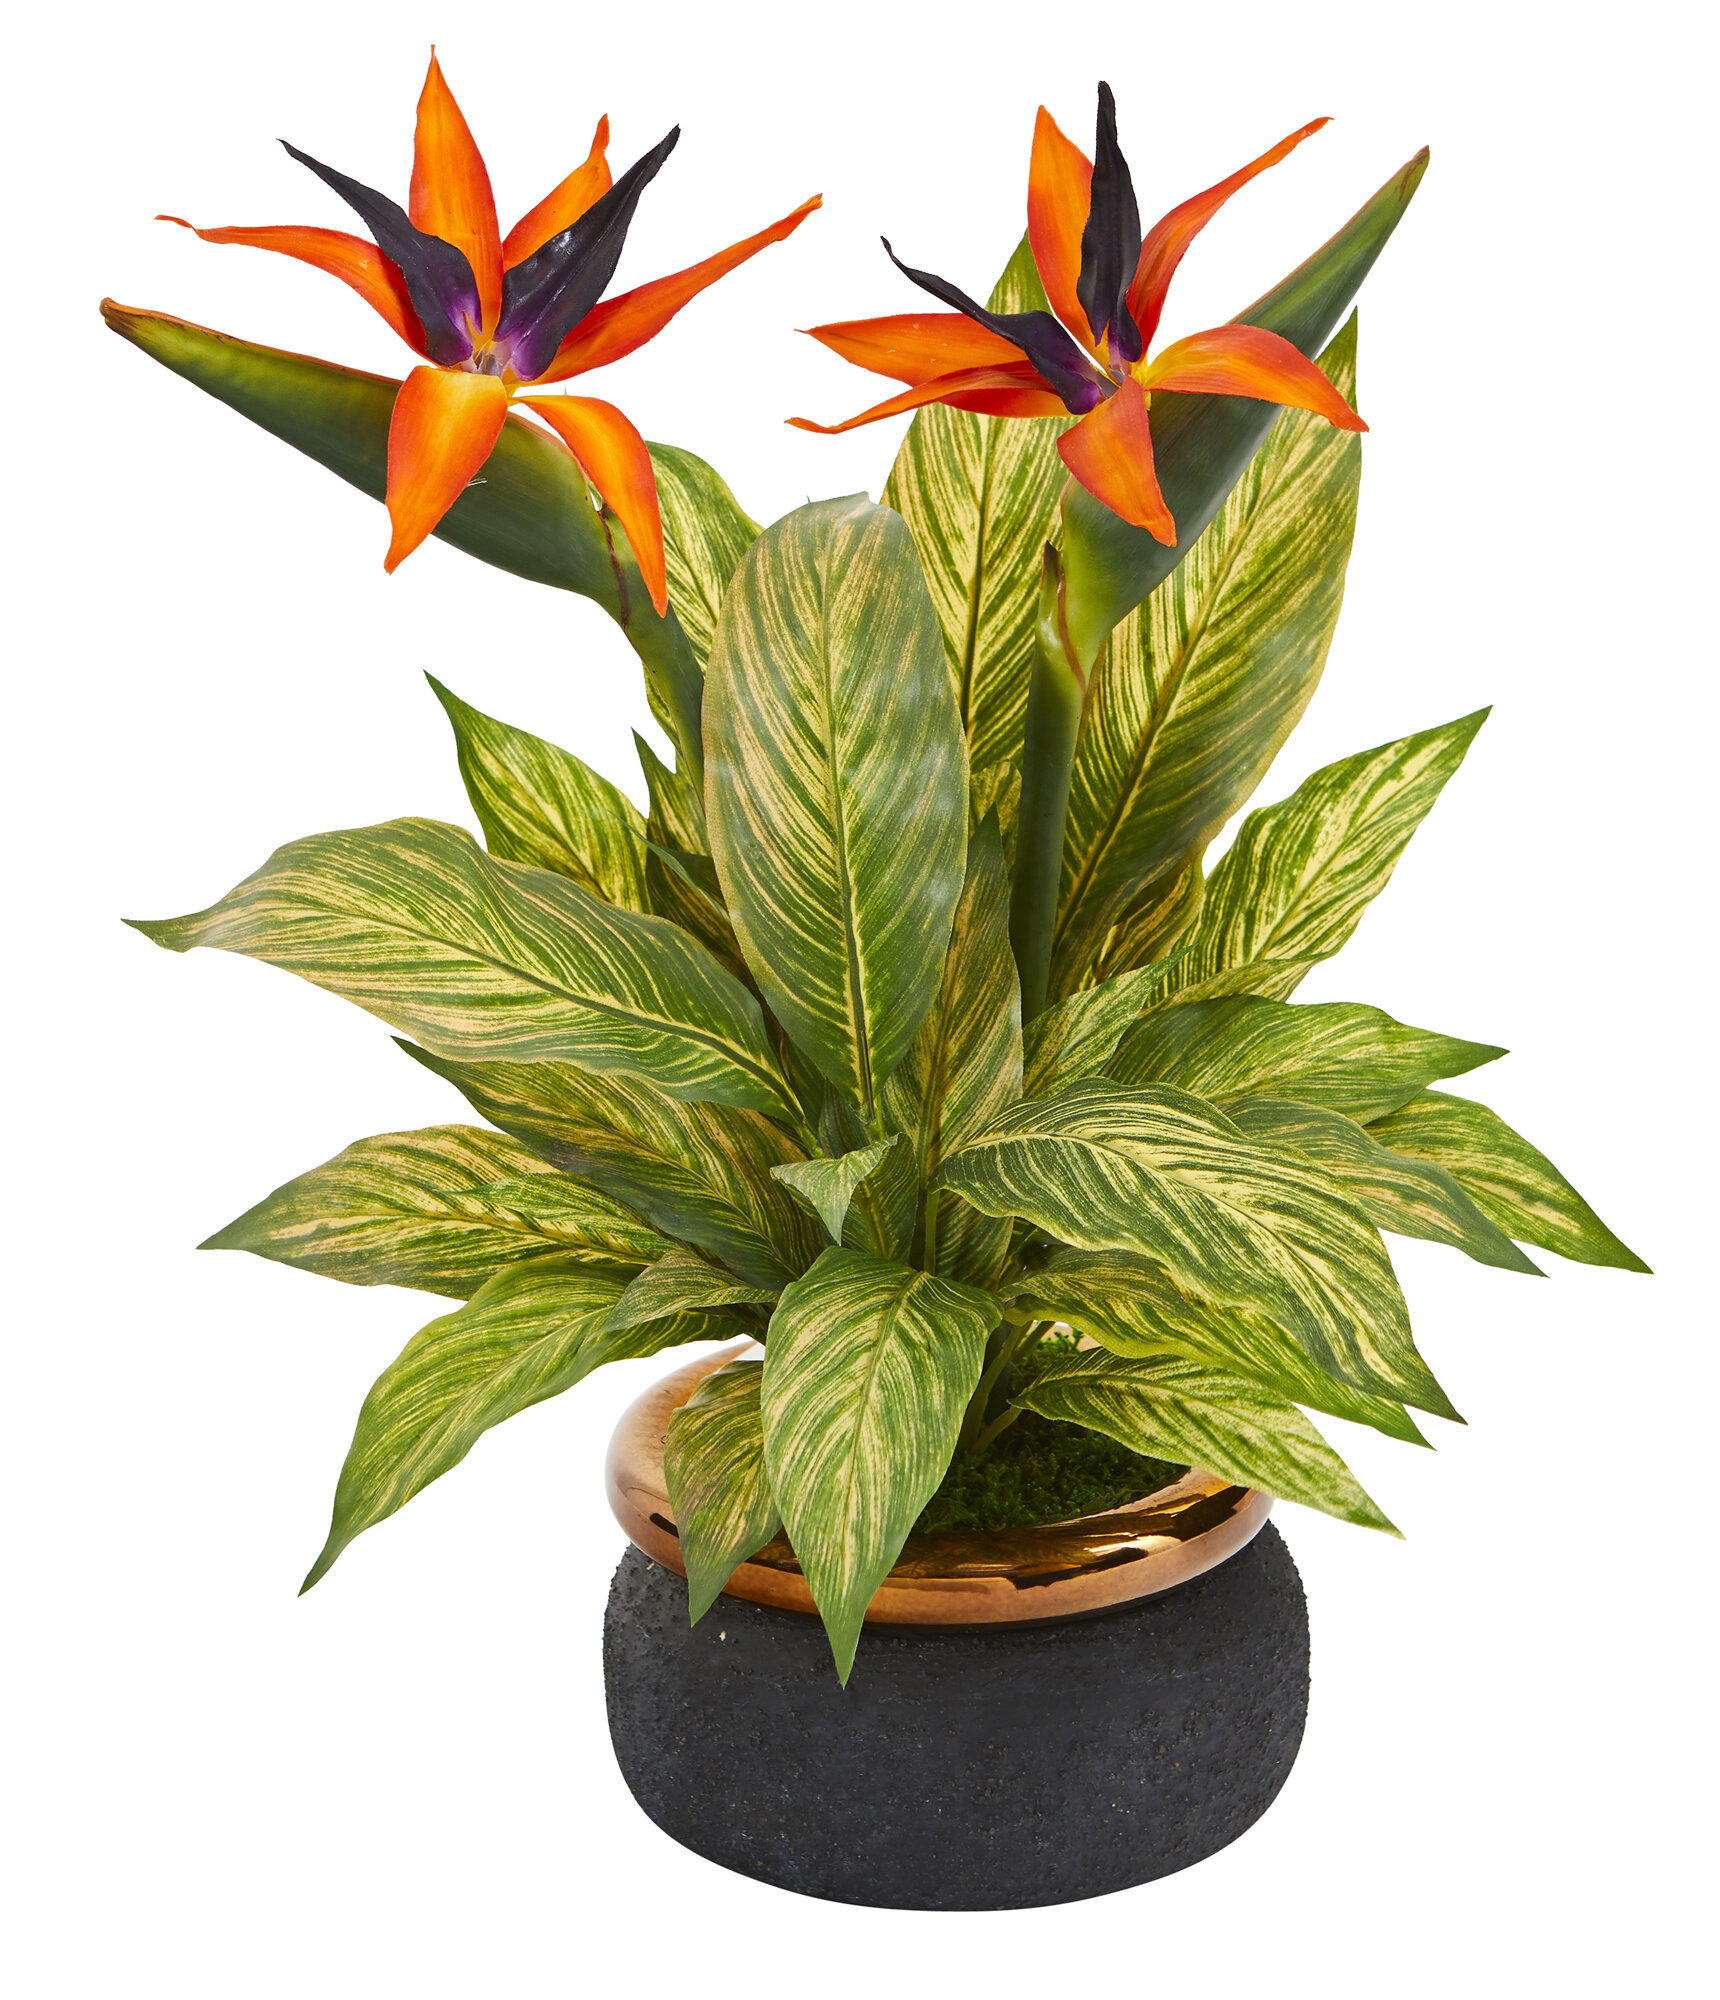 Bay Isle Home Bird Of Paradise And Musa Leaf Artificial Mixed Floral Arrangement In Planter Wayfair